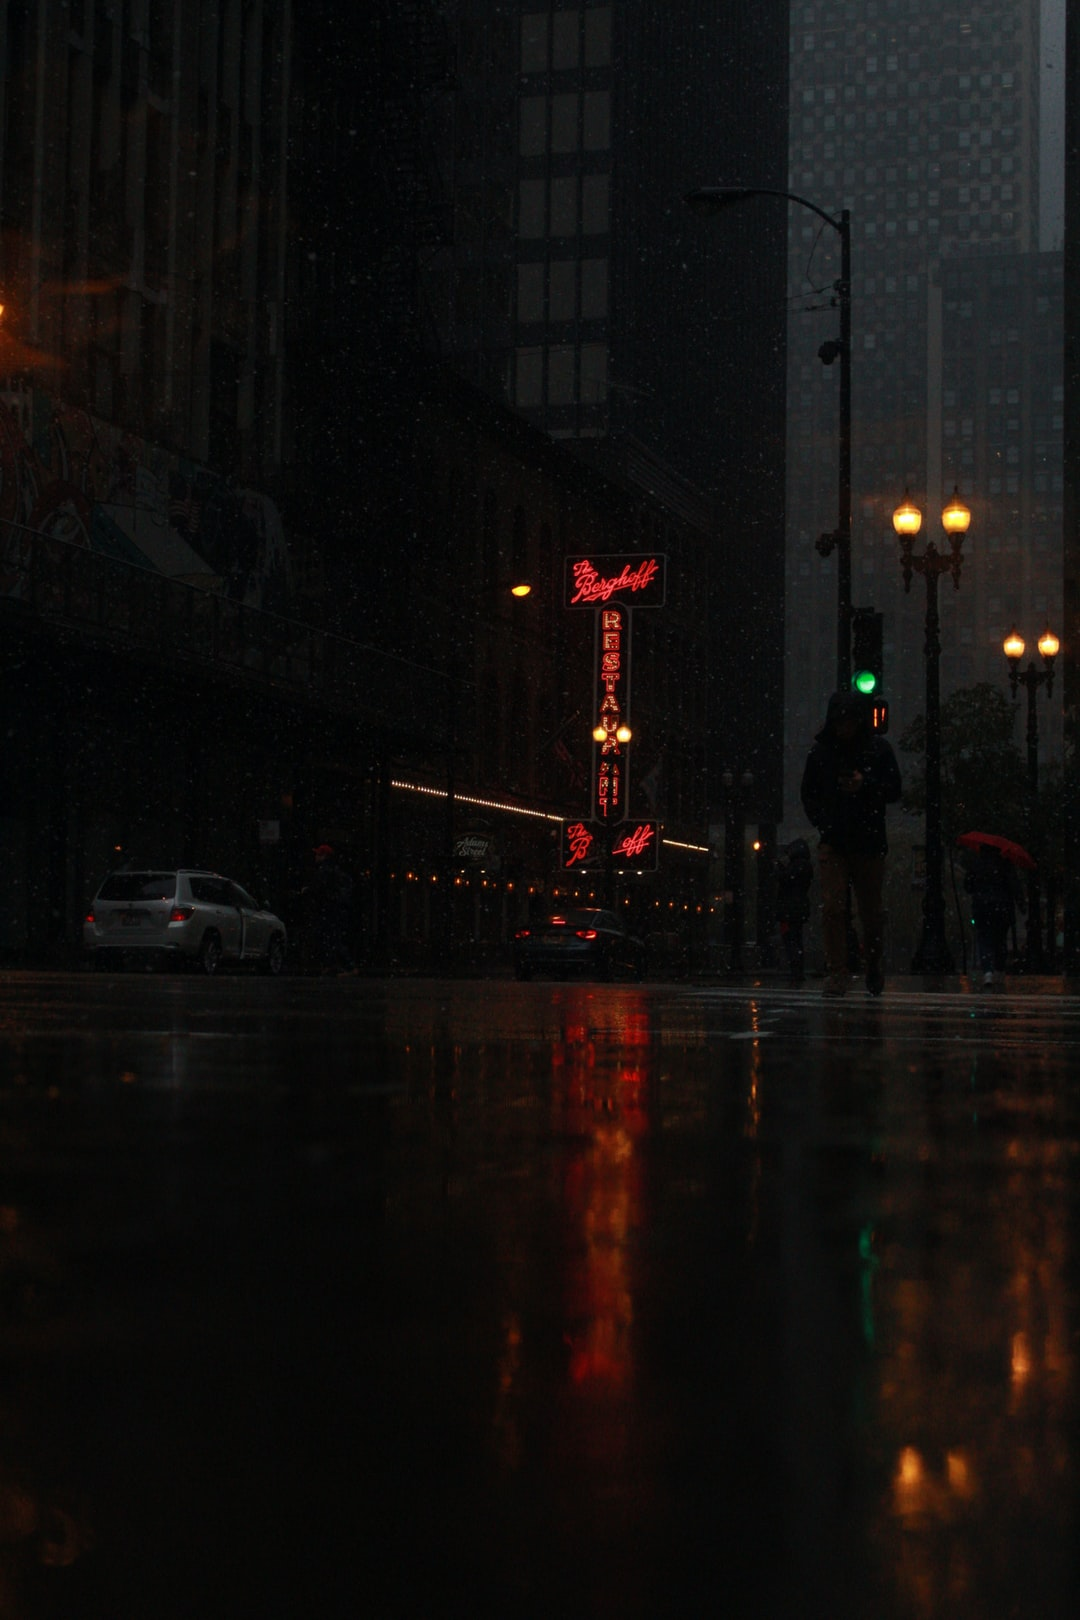 A moody shot of Chicago